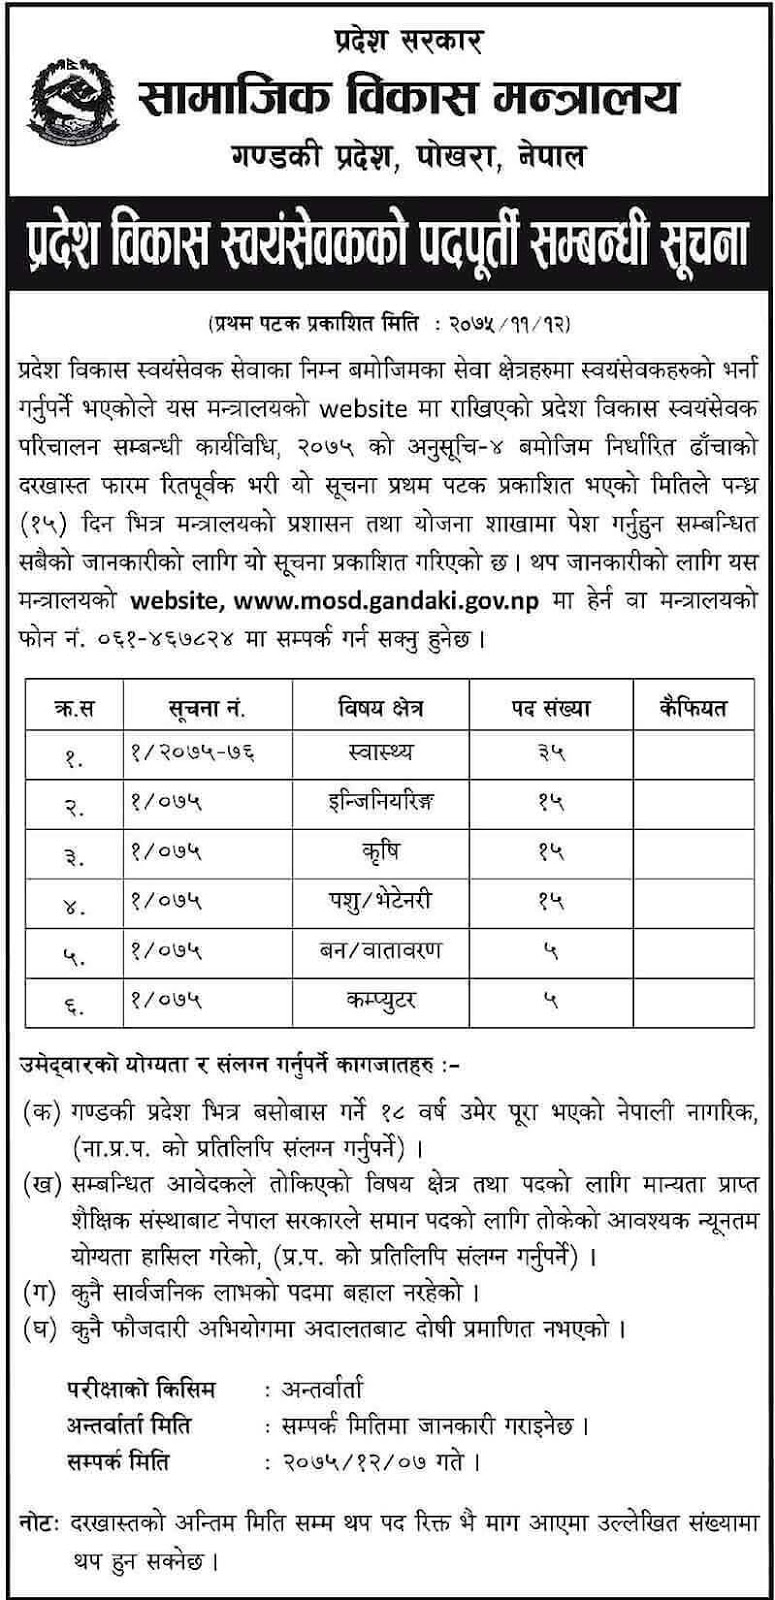 Ministry of Social Development, Gandaki Province, Pokhara Vacancy Notice